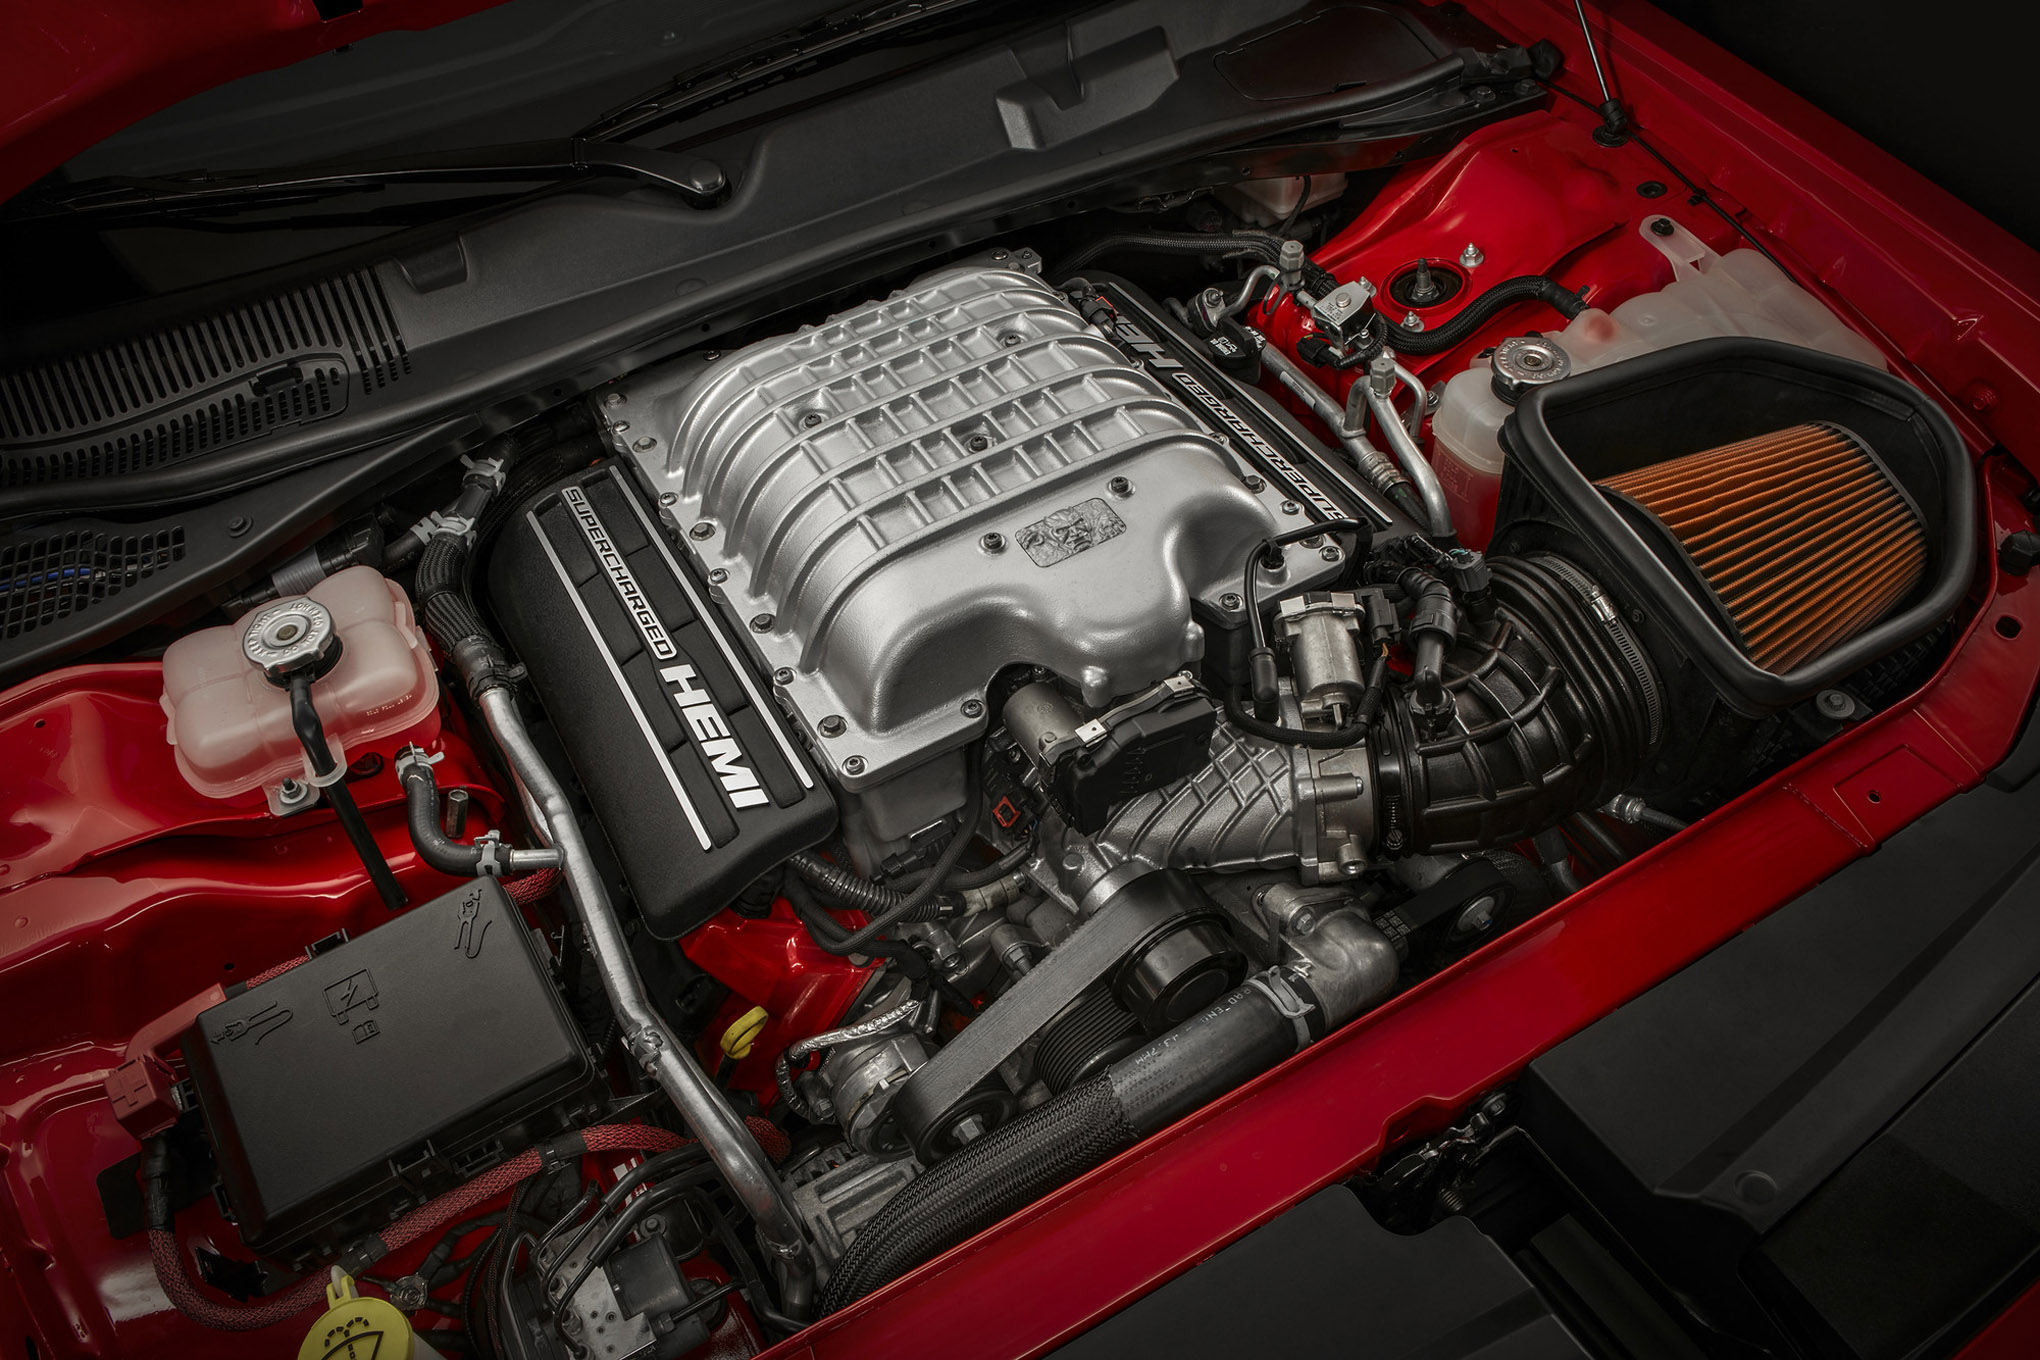 Under the hood of the 2018 Dodge Challenger SRT Demon is a Super